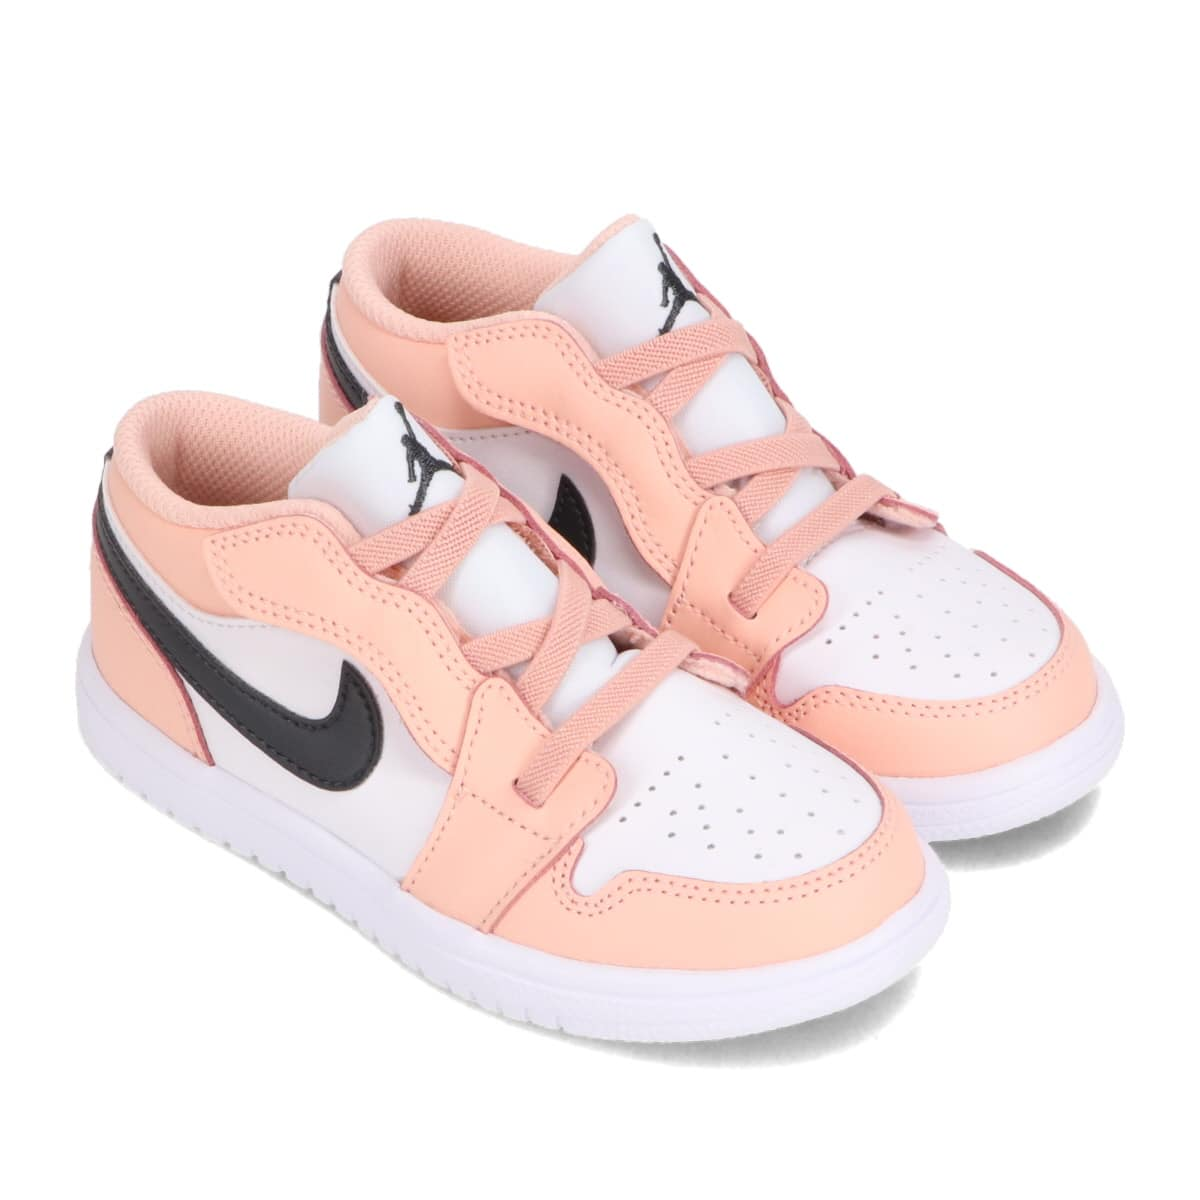 JORDAN BRAND JORDAN 1 LOW ALT TD ARCTIC ORANGE/ANTHRACITE-WHITE 21SU-I_photo_large